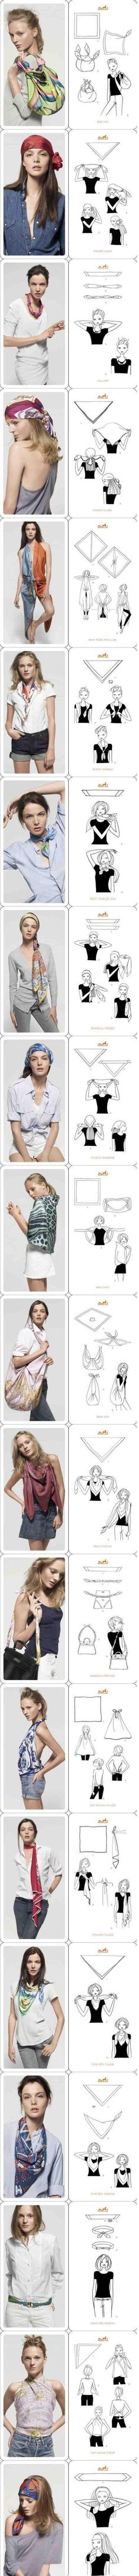 How To Wear Belts - Every single way to use a scarf. Love the first top, and the handbagstrap! - Discover how to make the belt the ideal complement to enhance your figure. Look Fashion, Diy Fashion, Fashion Beauty, Fashion Tips, Fashion Hacks, Fashion Clothes, Mode Style, Style Me, Do It Yourself Fashion